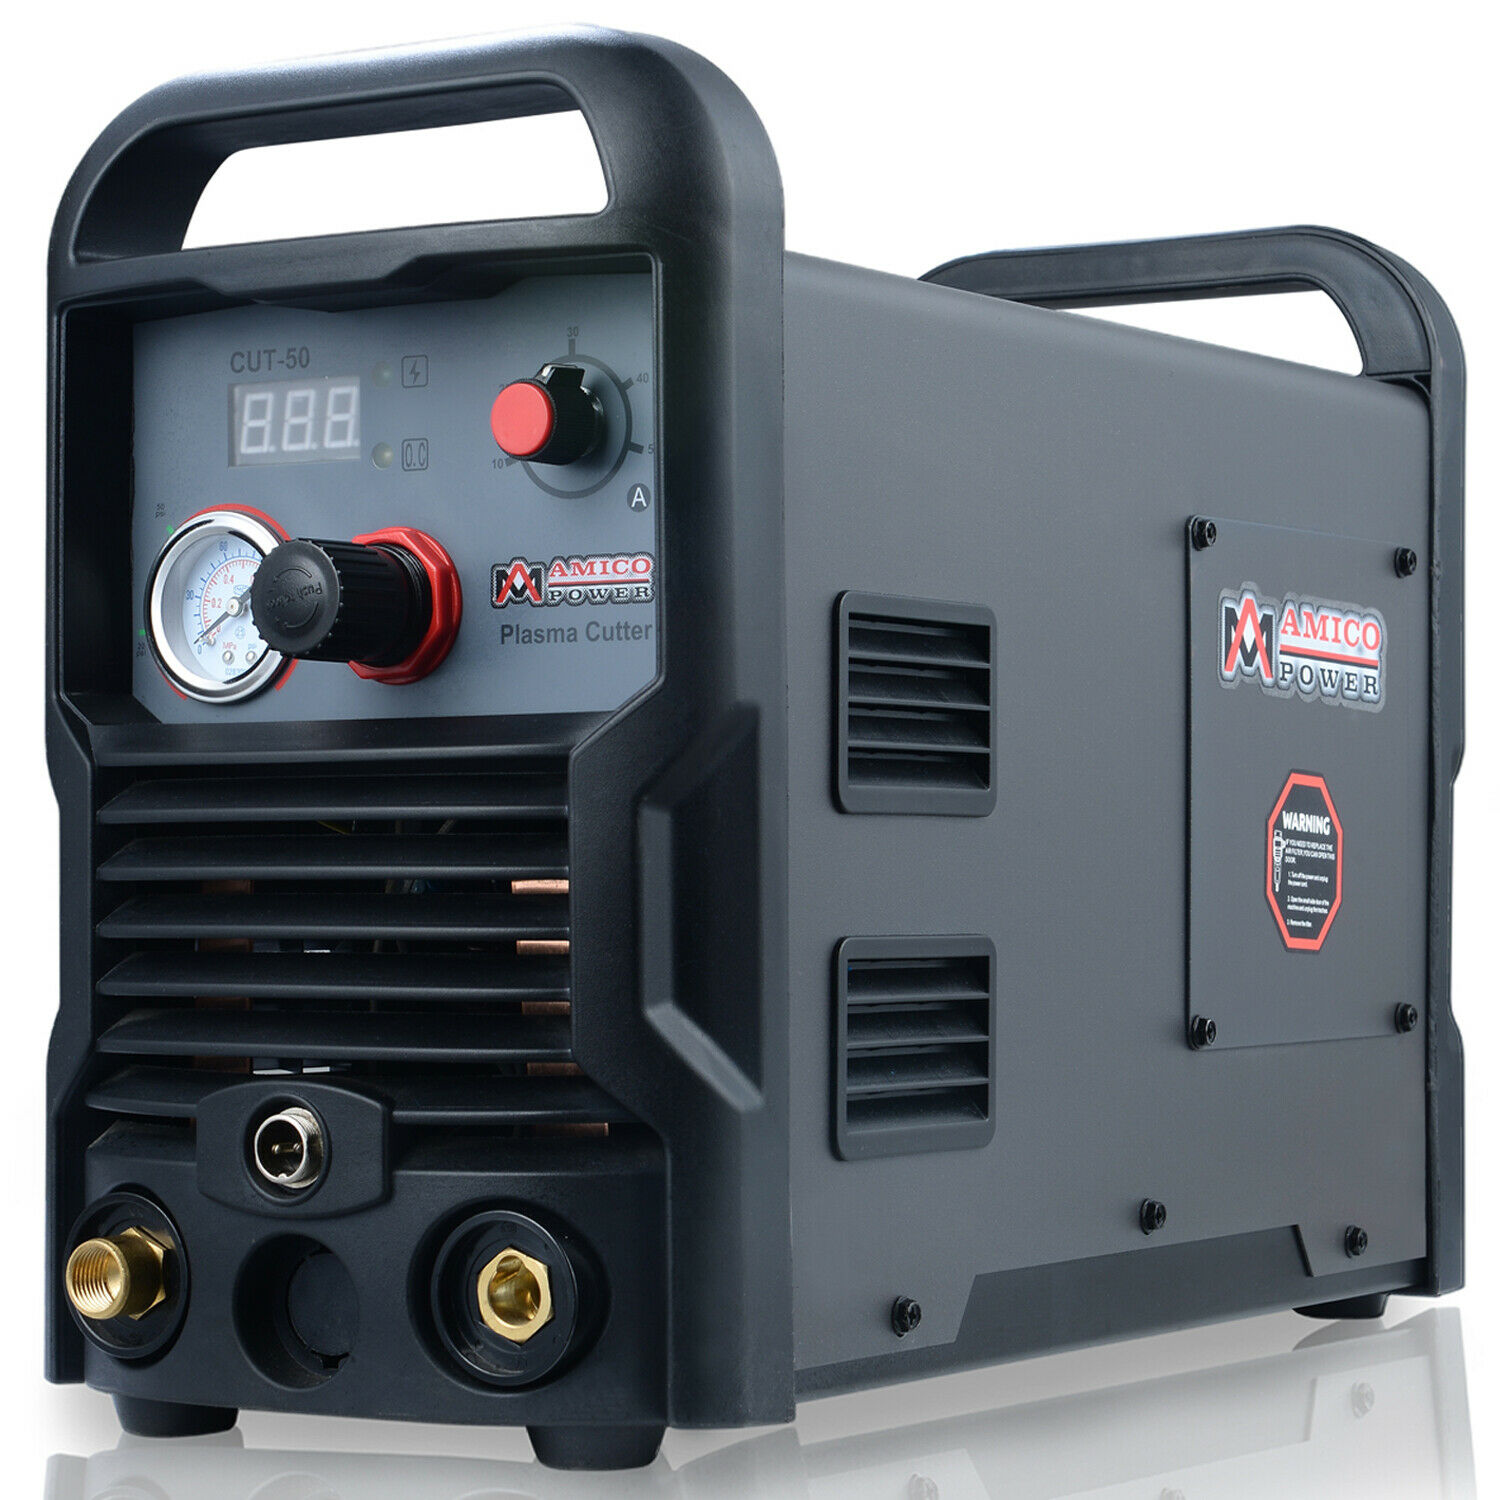 Amico CUT-50, 50 Amp Air Plasma Cutter, 110/230V Dual Voltage Inverter Cutting. Buy it now for 279.00